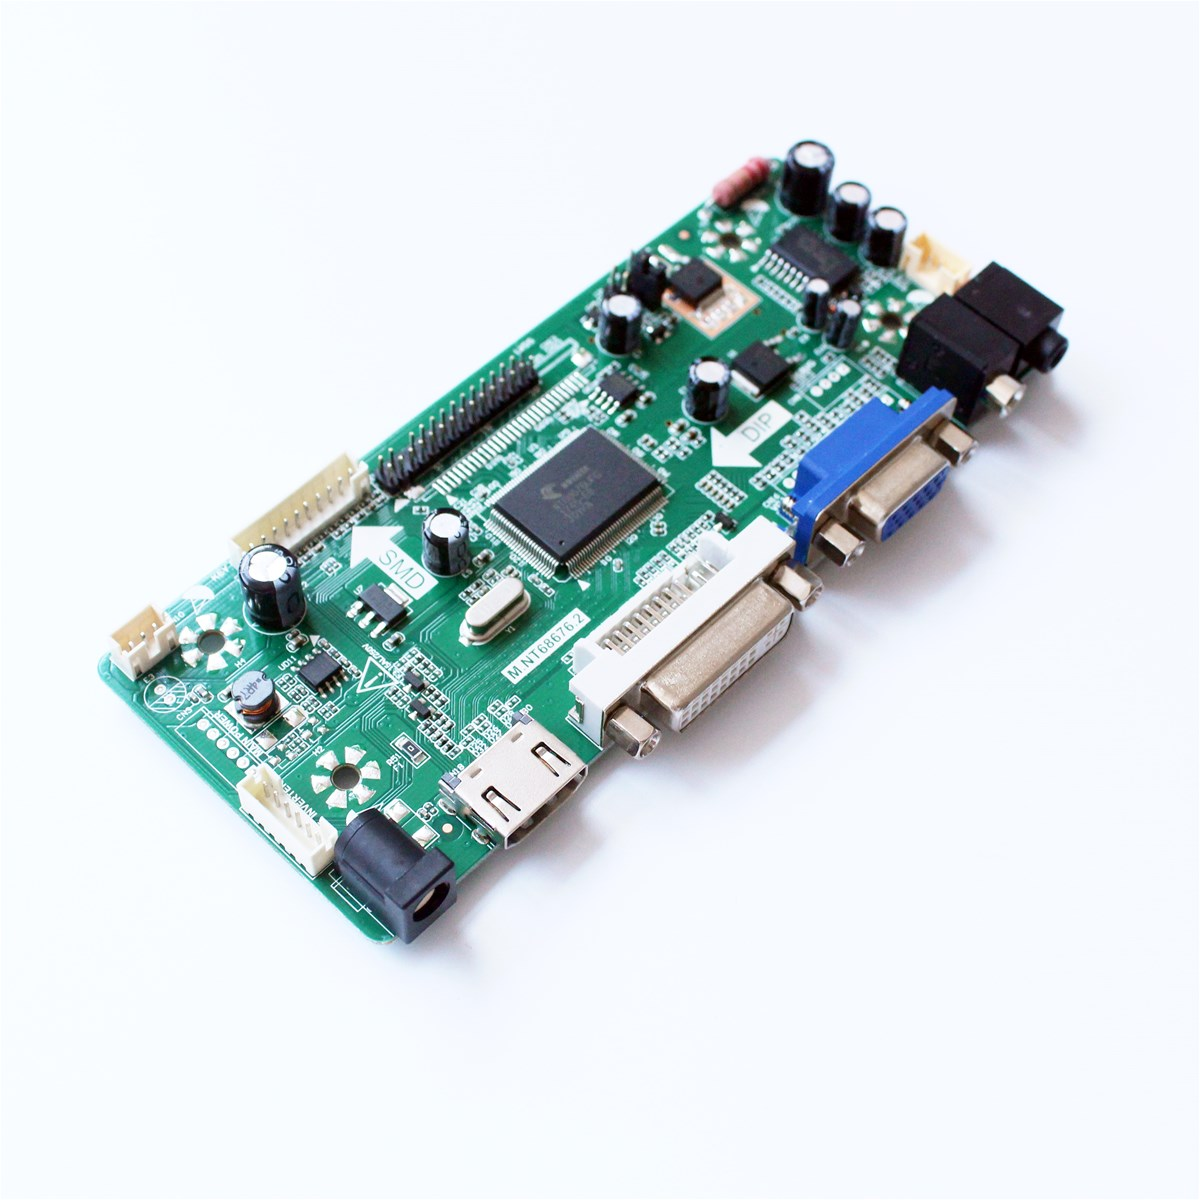 LCD TFT LCD Controller Board with HDMI DVI AUDIO VGA Input Interface Support Resolution 1600X900 Easy DIY LCD Module